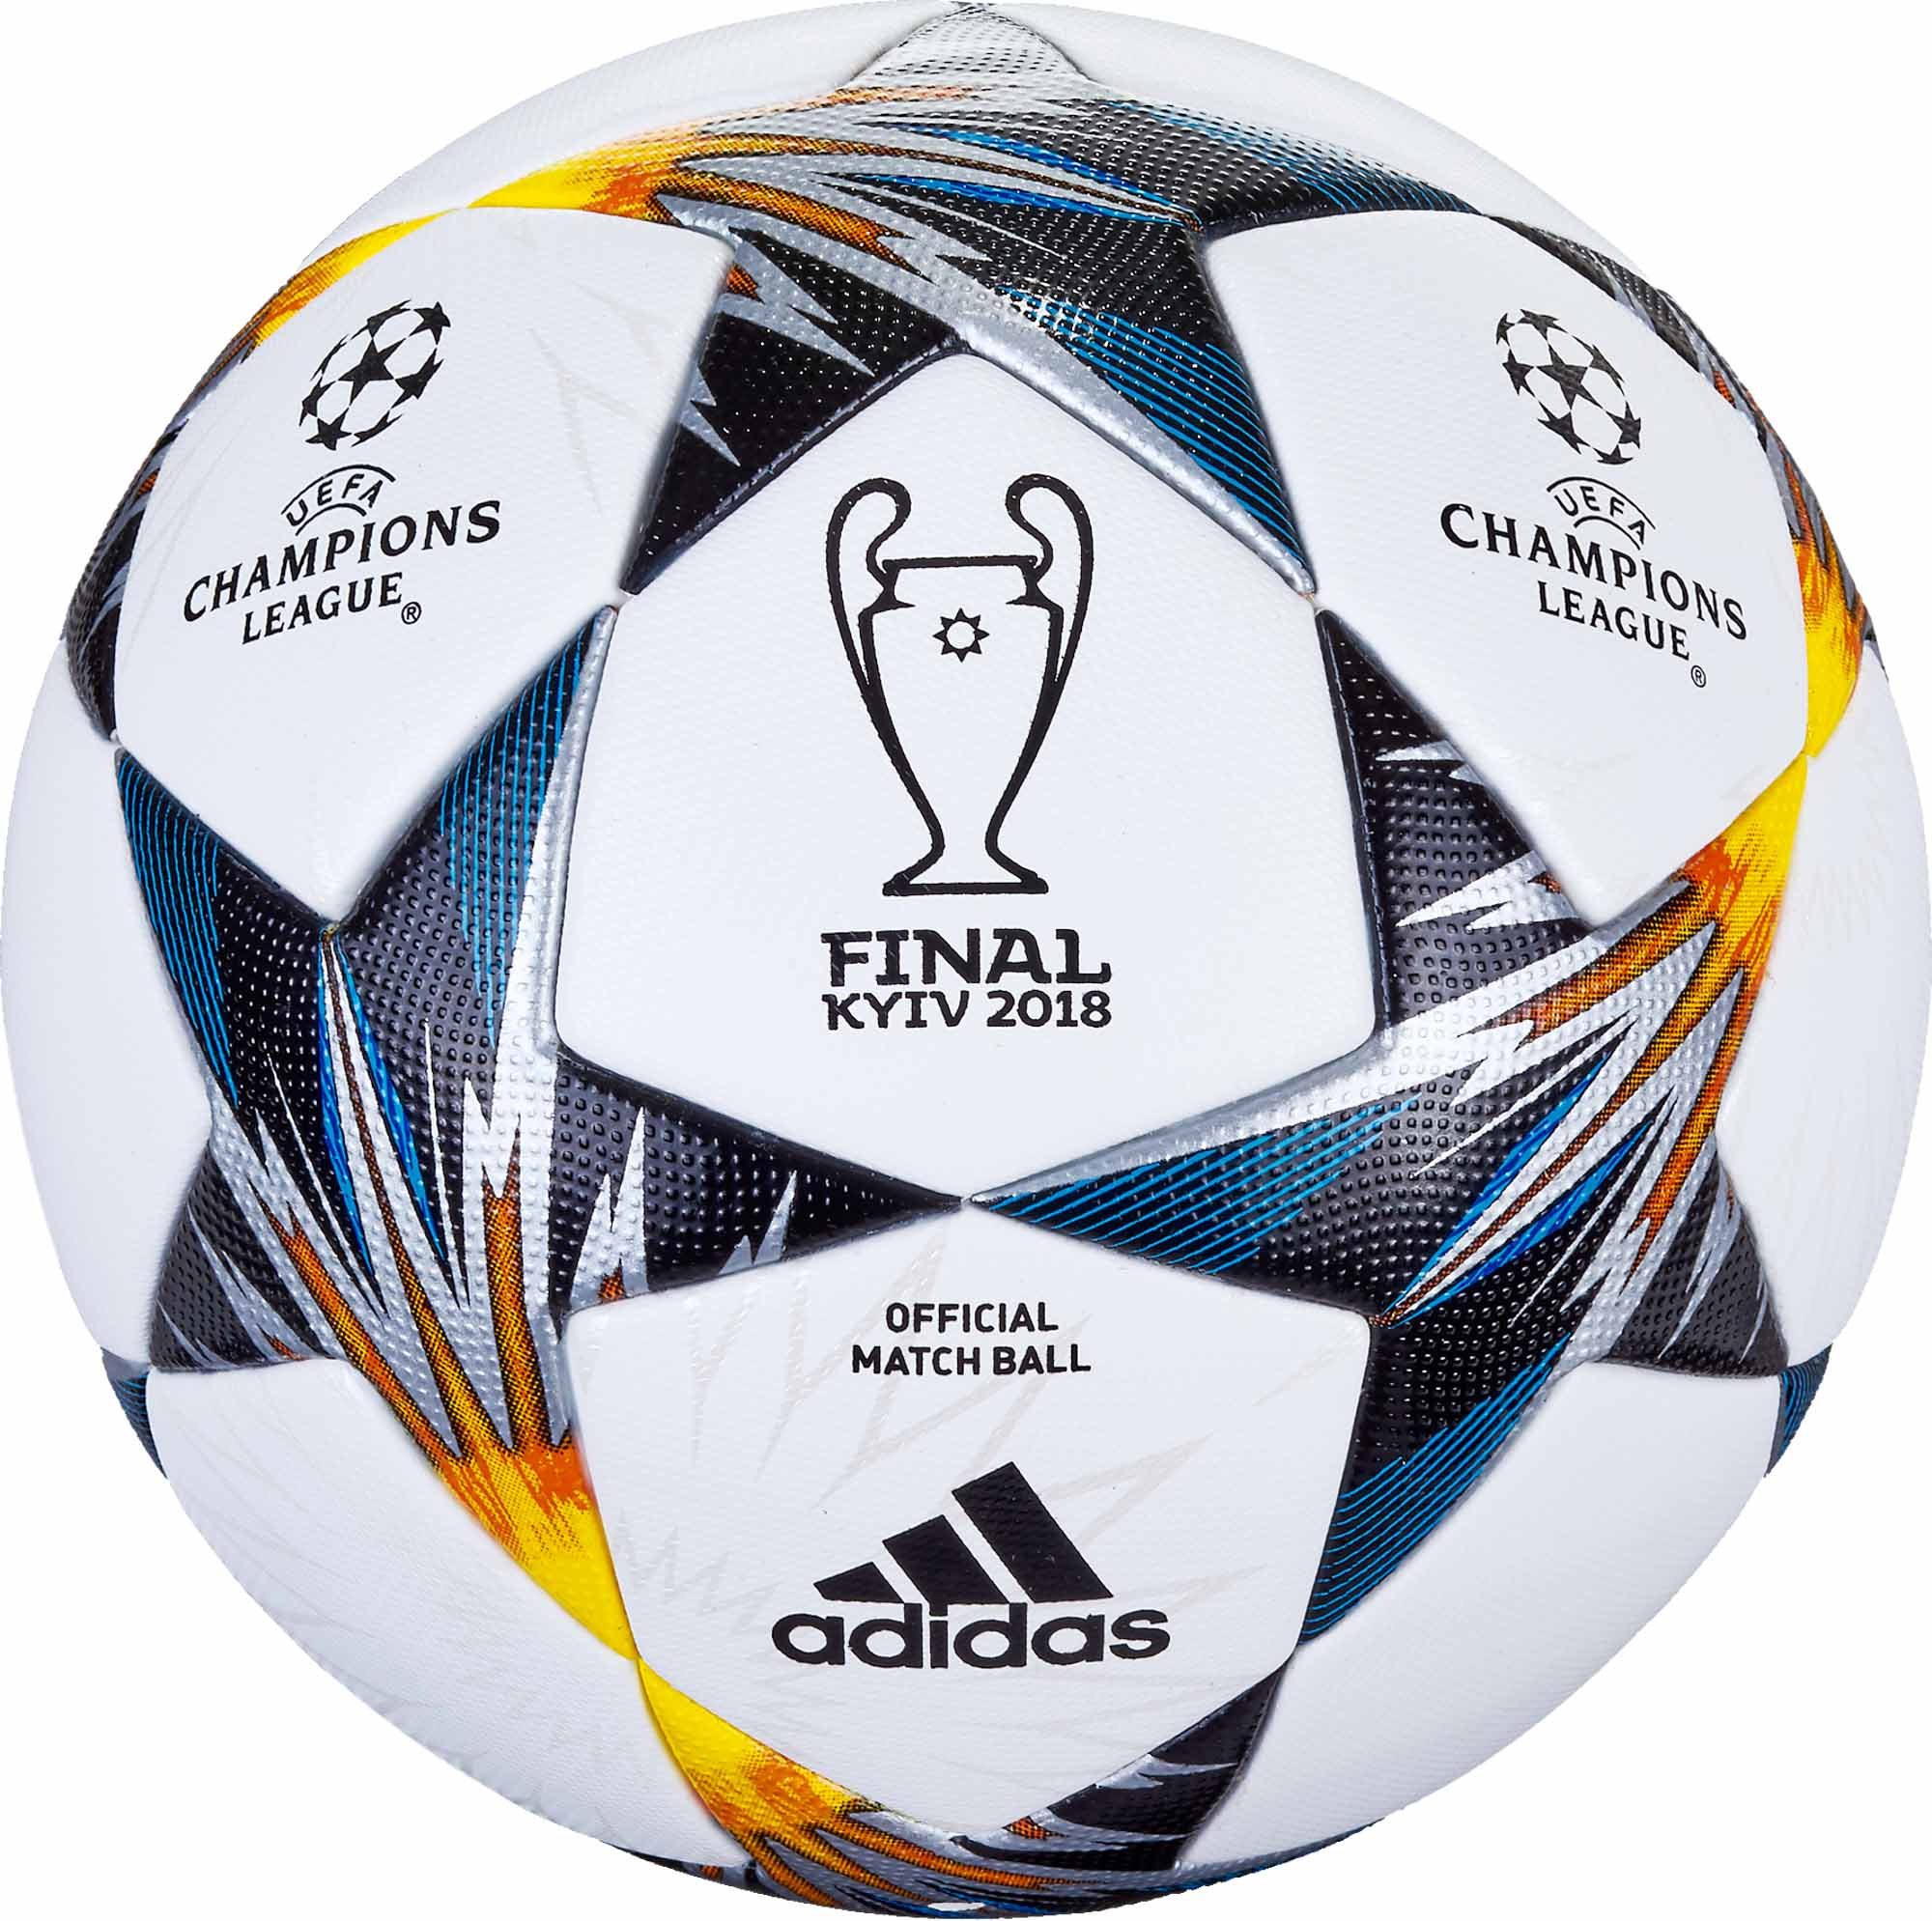 89e26639e adidas Finale 18 Kiev- UEFA Champions League Match Ball